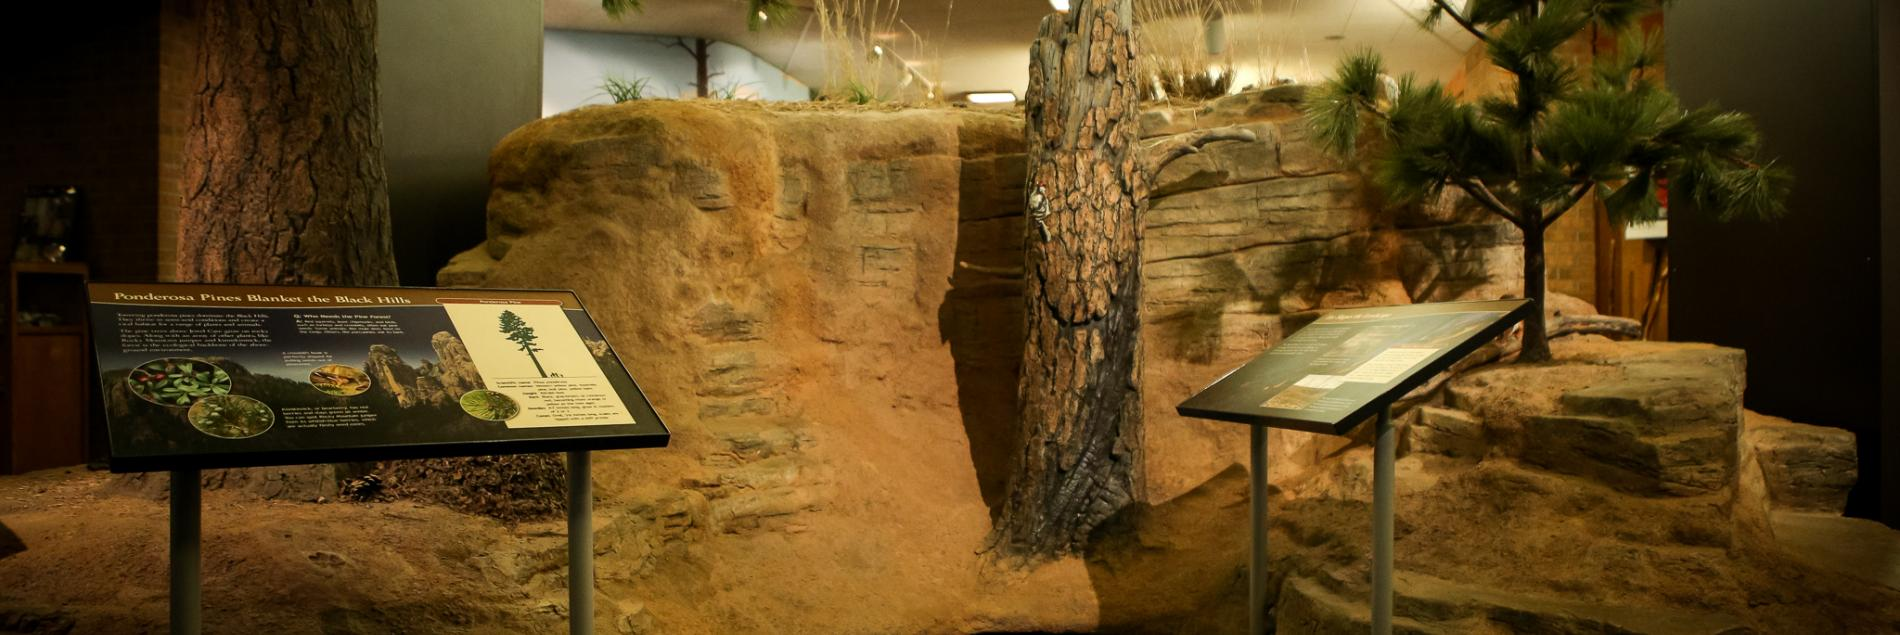 Visitor Center | Jewel Cave National Monument | Photo by: Greg Valladolid